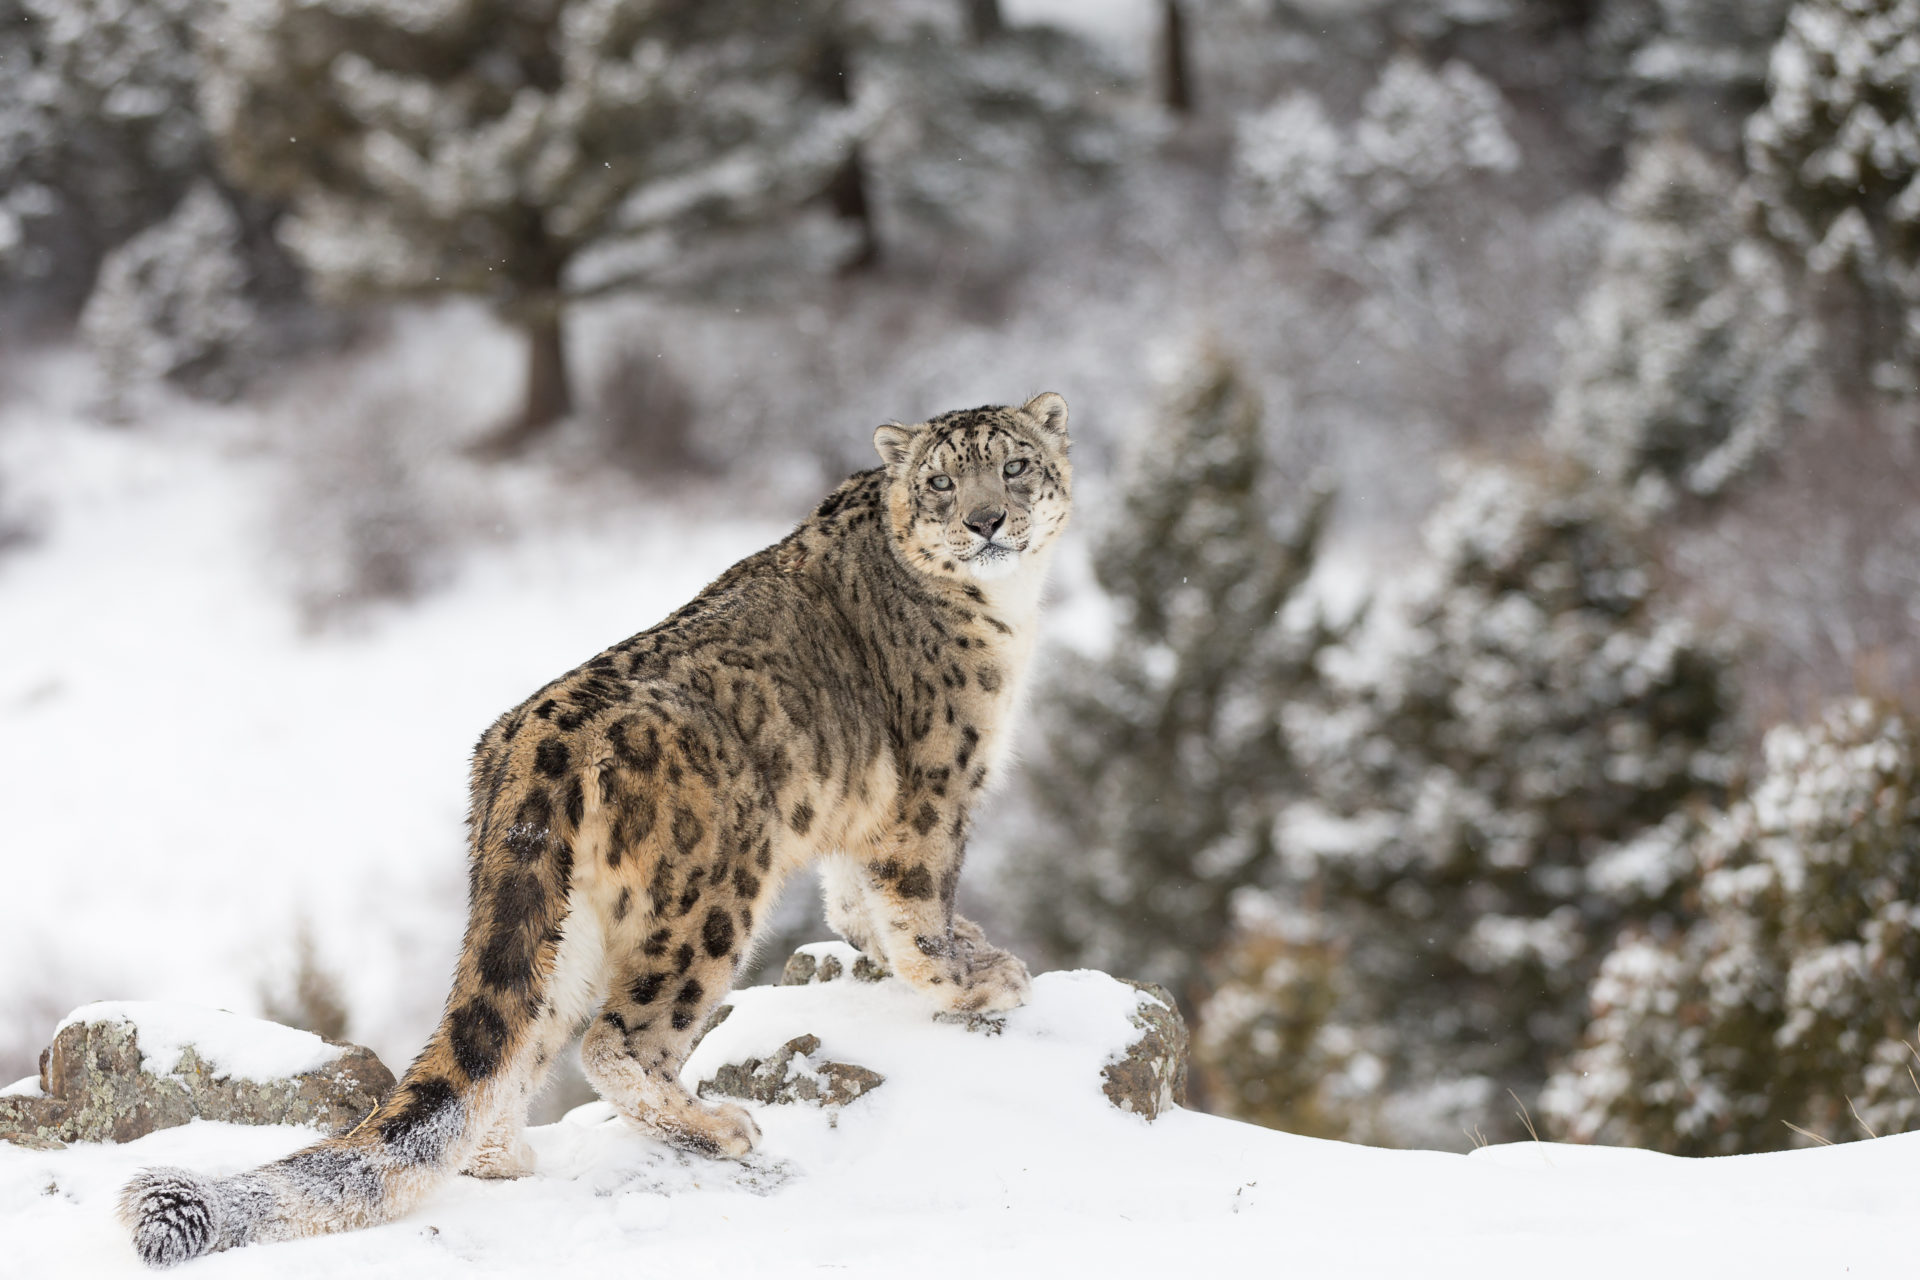 Snow Leopard Hd Wallpapers New Tab Theme Impressive Nature